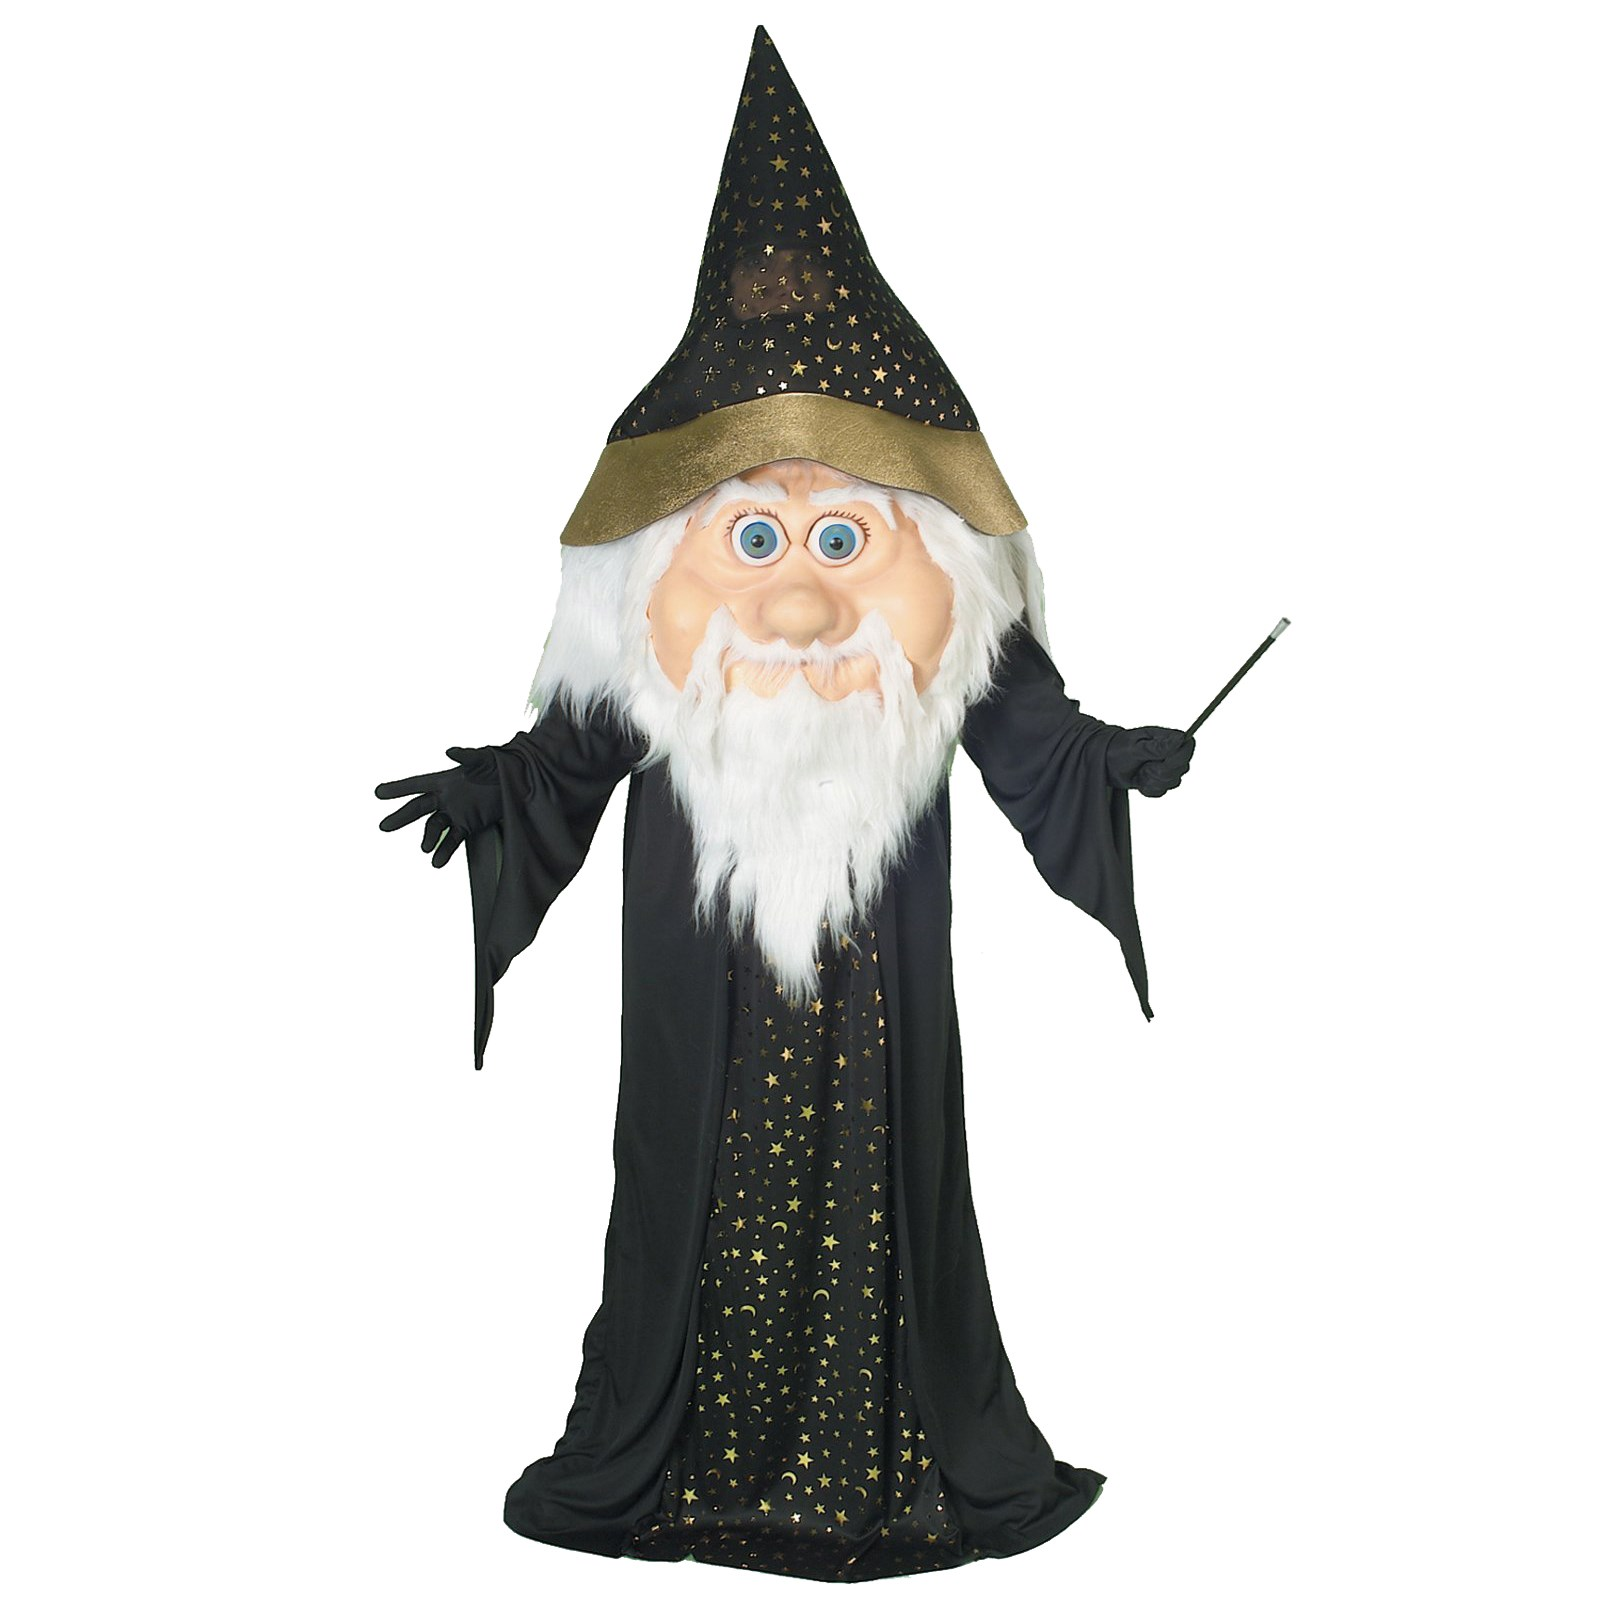 Parade Wizard Adult Costume | BuyCostumes.com